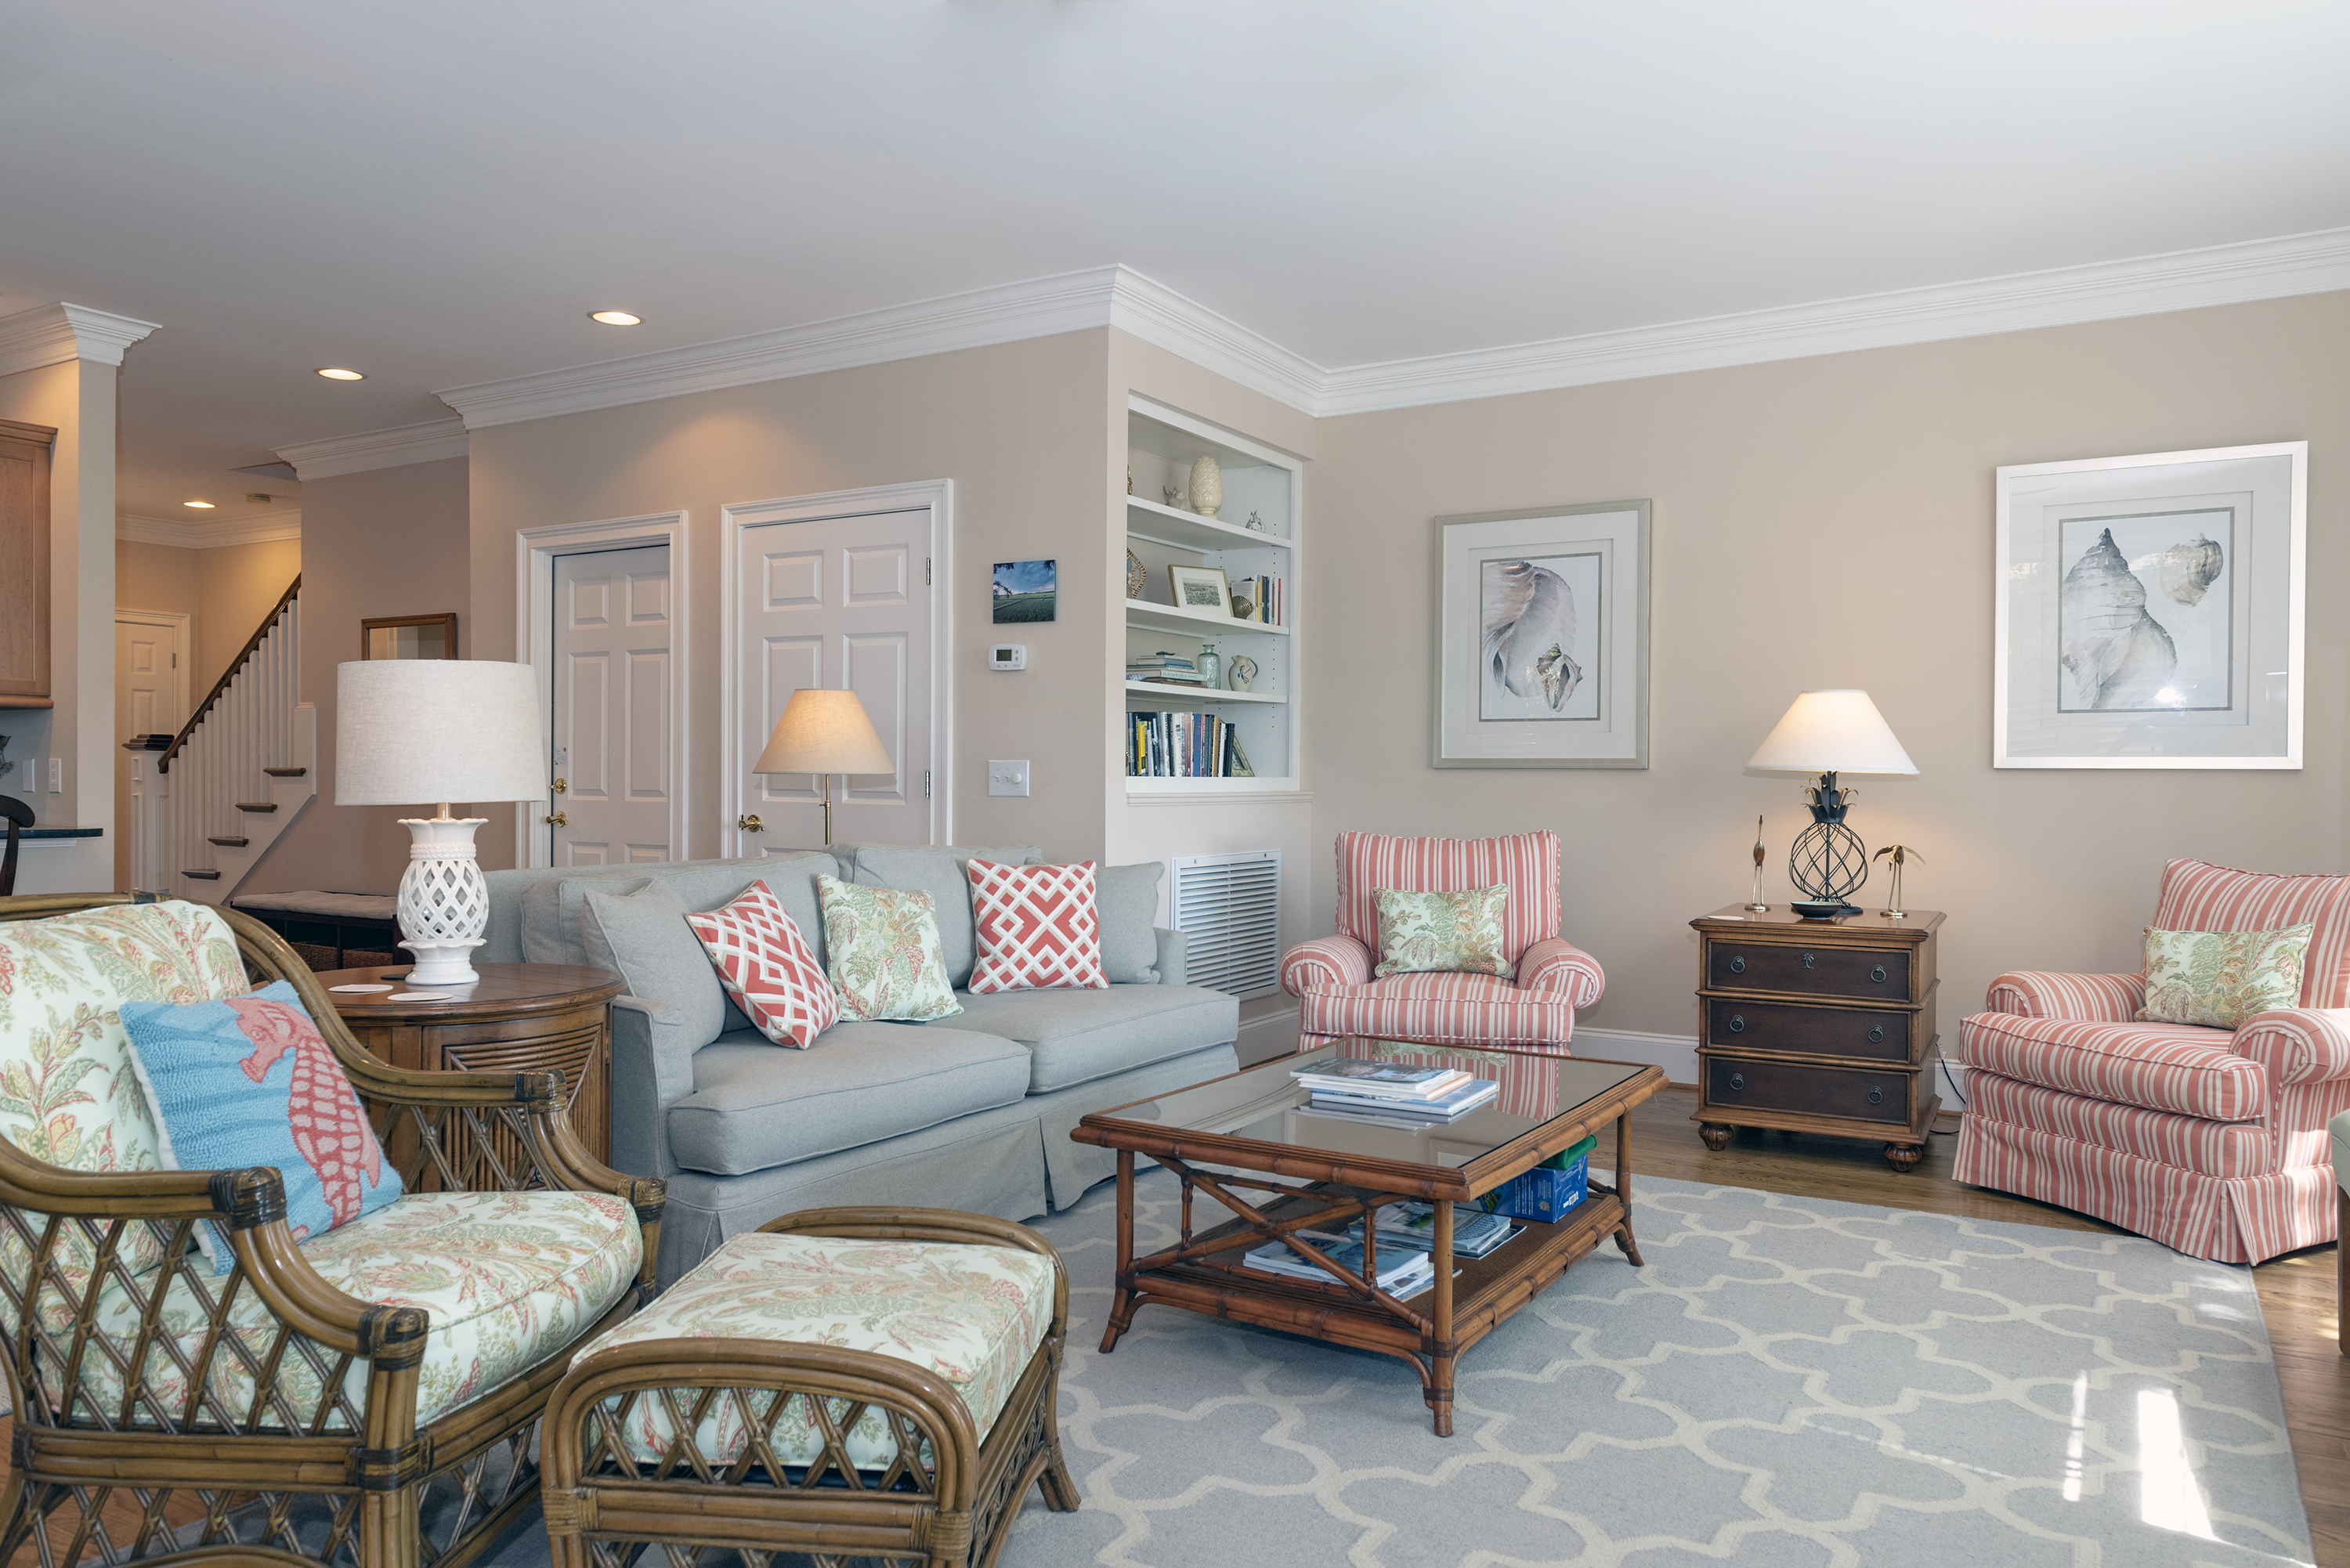 The great room has ample seating for everyone and windows bringing in all the natural light.